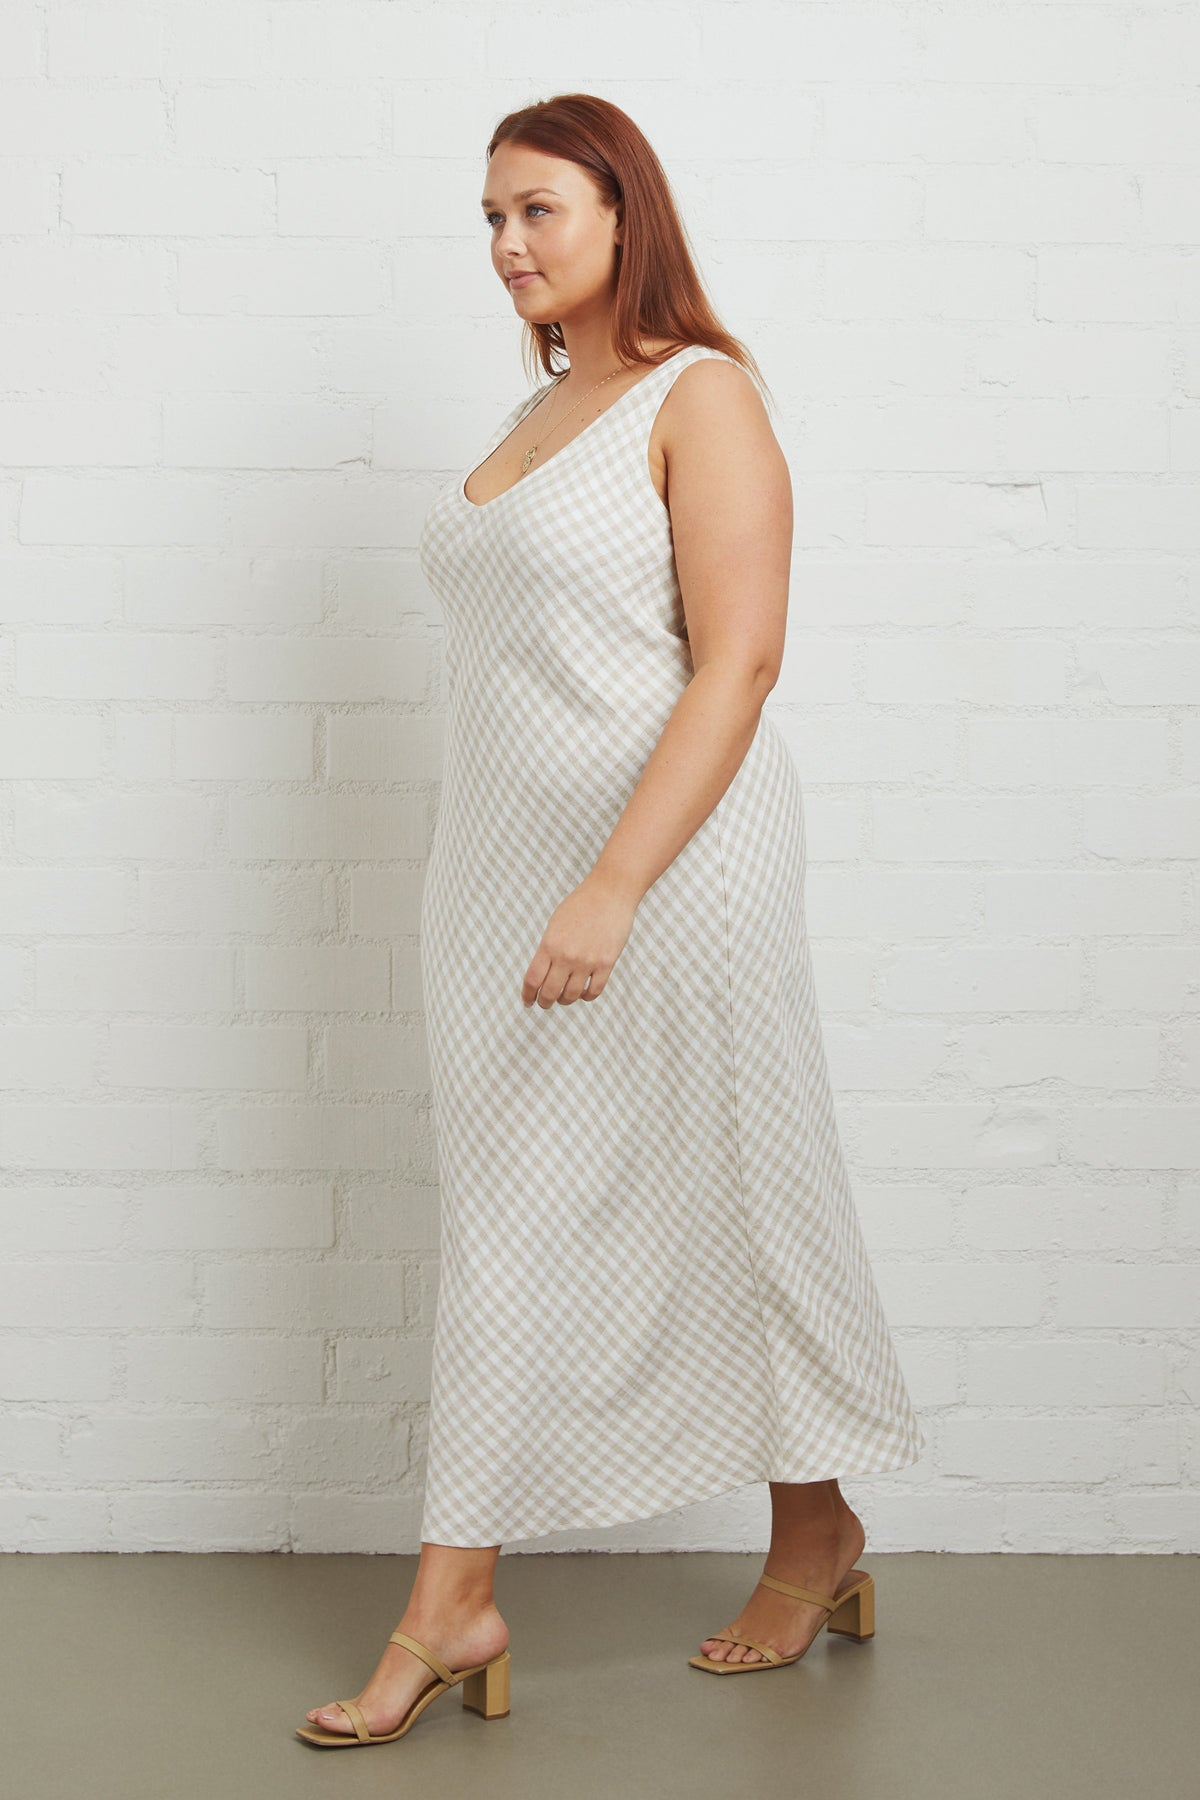 Linen Bias Dress - Gingham, Plus Size